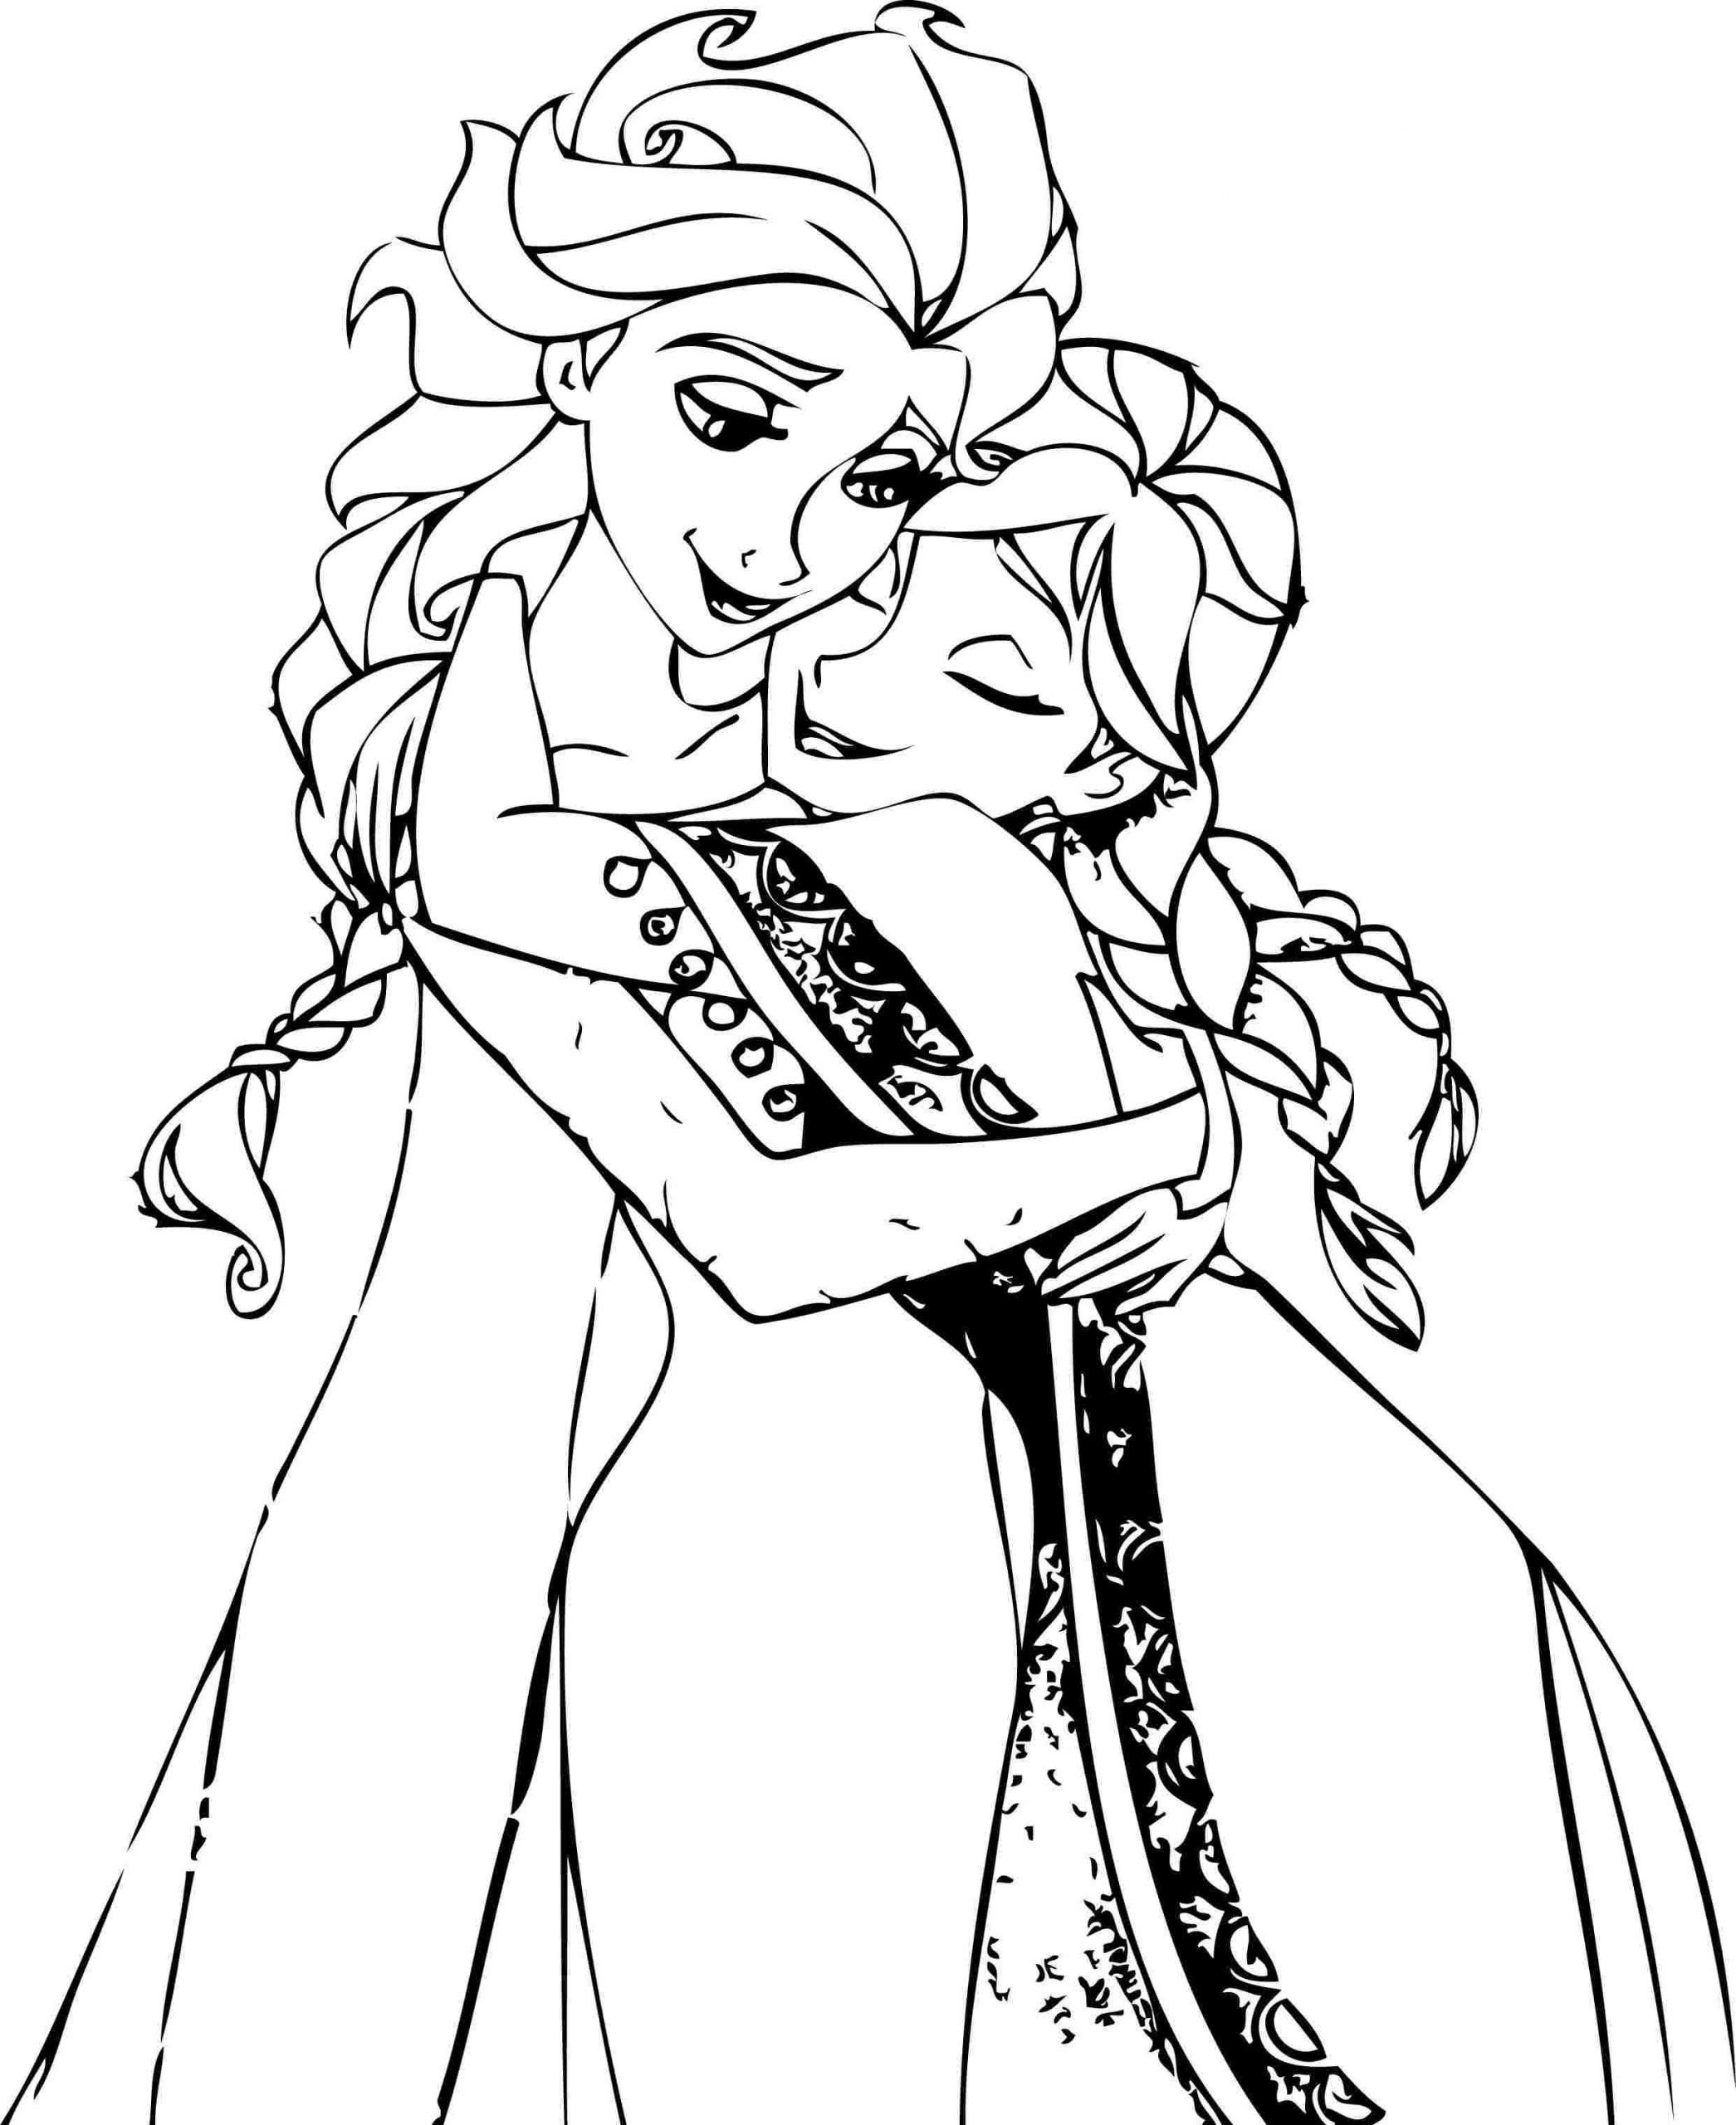 Disney Elsa Coloring Pages Coloring Pages Anna And Elsa Coloring Pages Free Printable Elsa Coloring Pages Princess Coloring Pages Frozen Coloring Pages